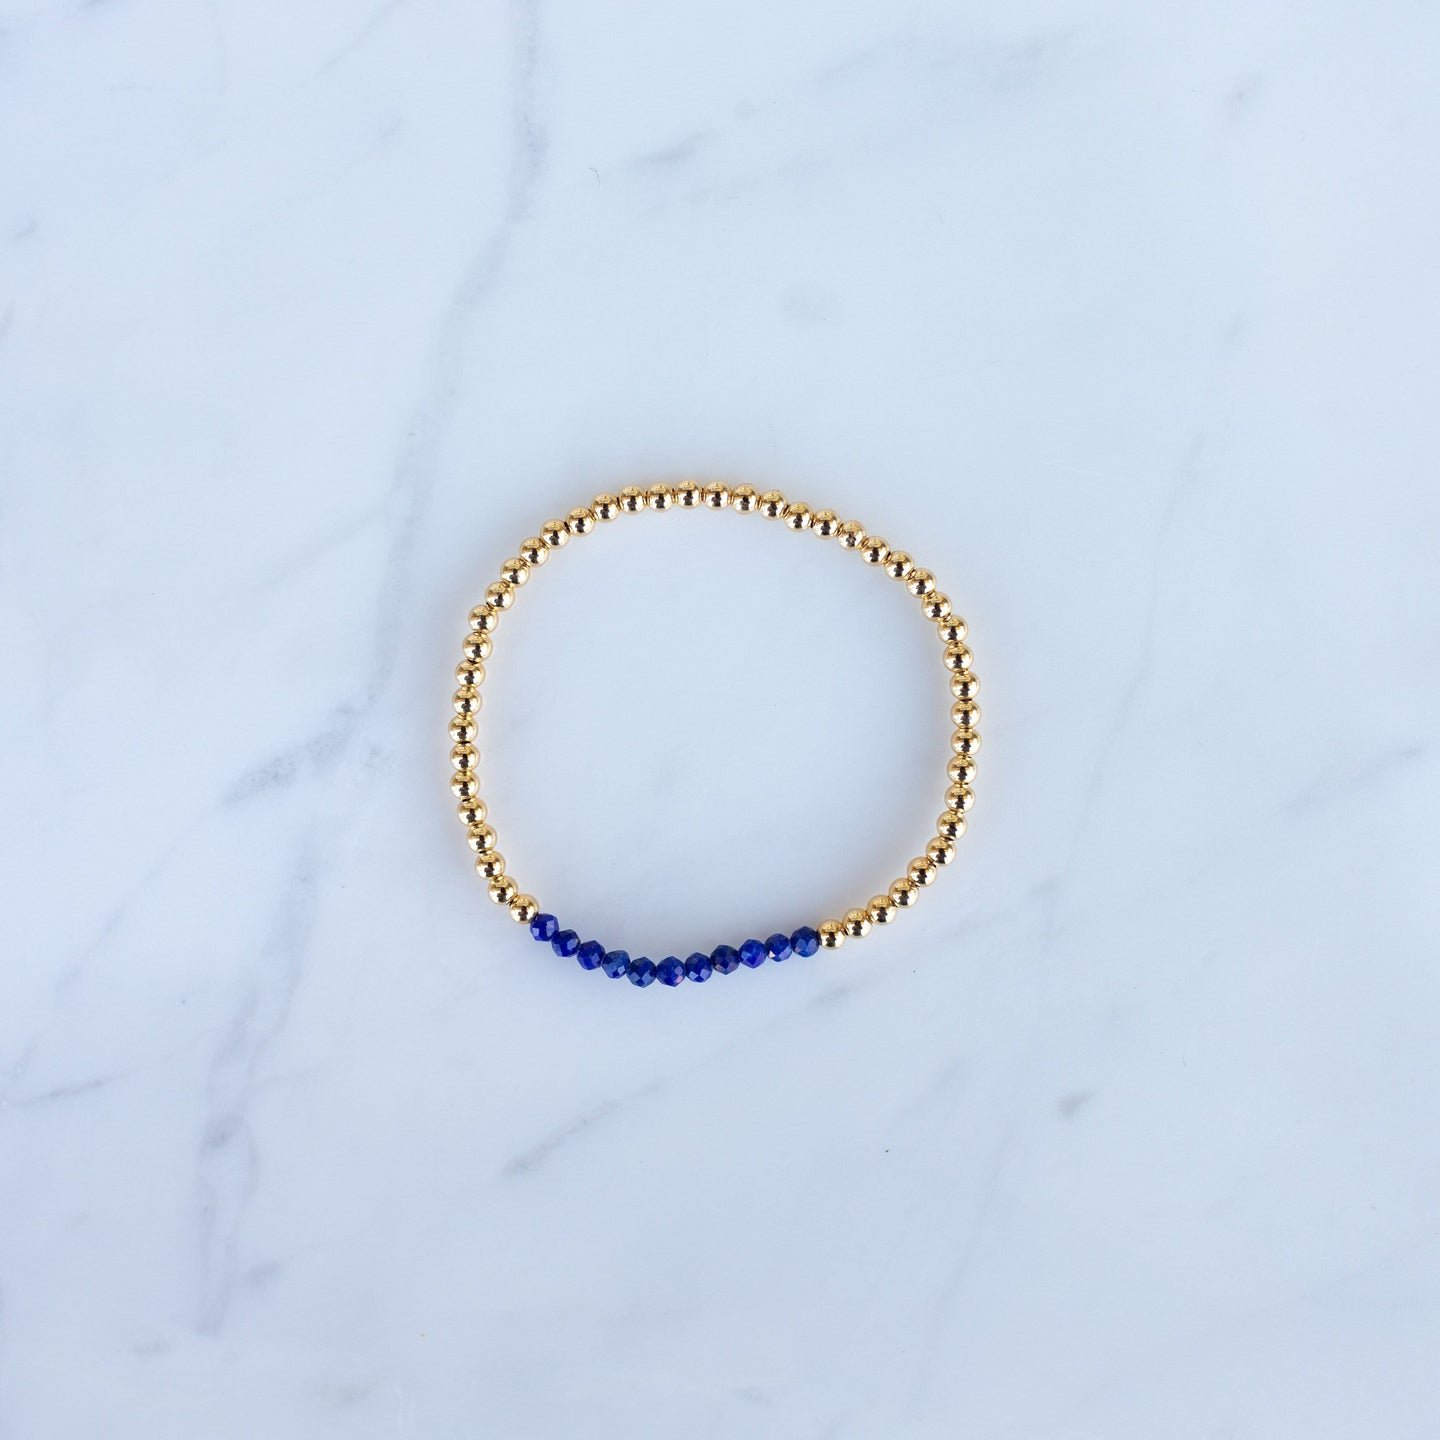 3mm Yellow Gold Filled & Blue Lapis Beaded Bracelet